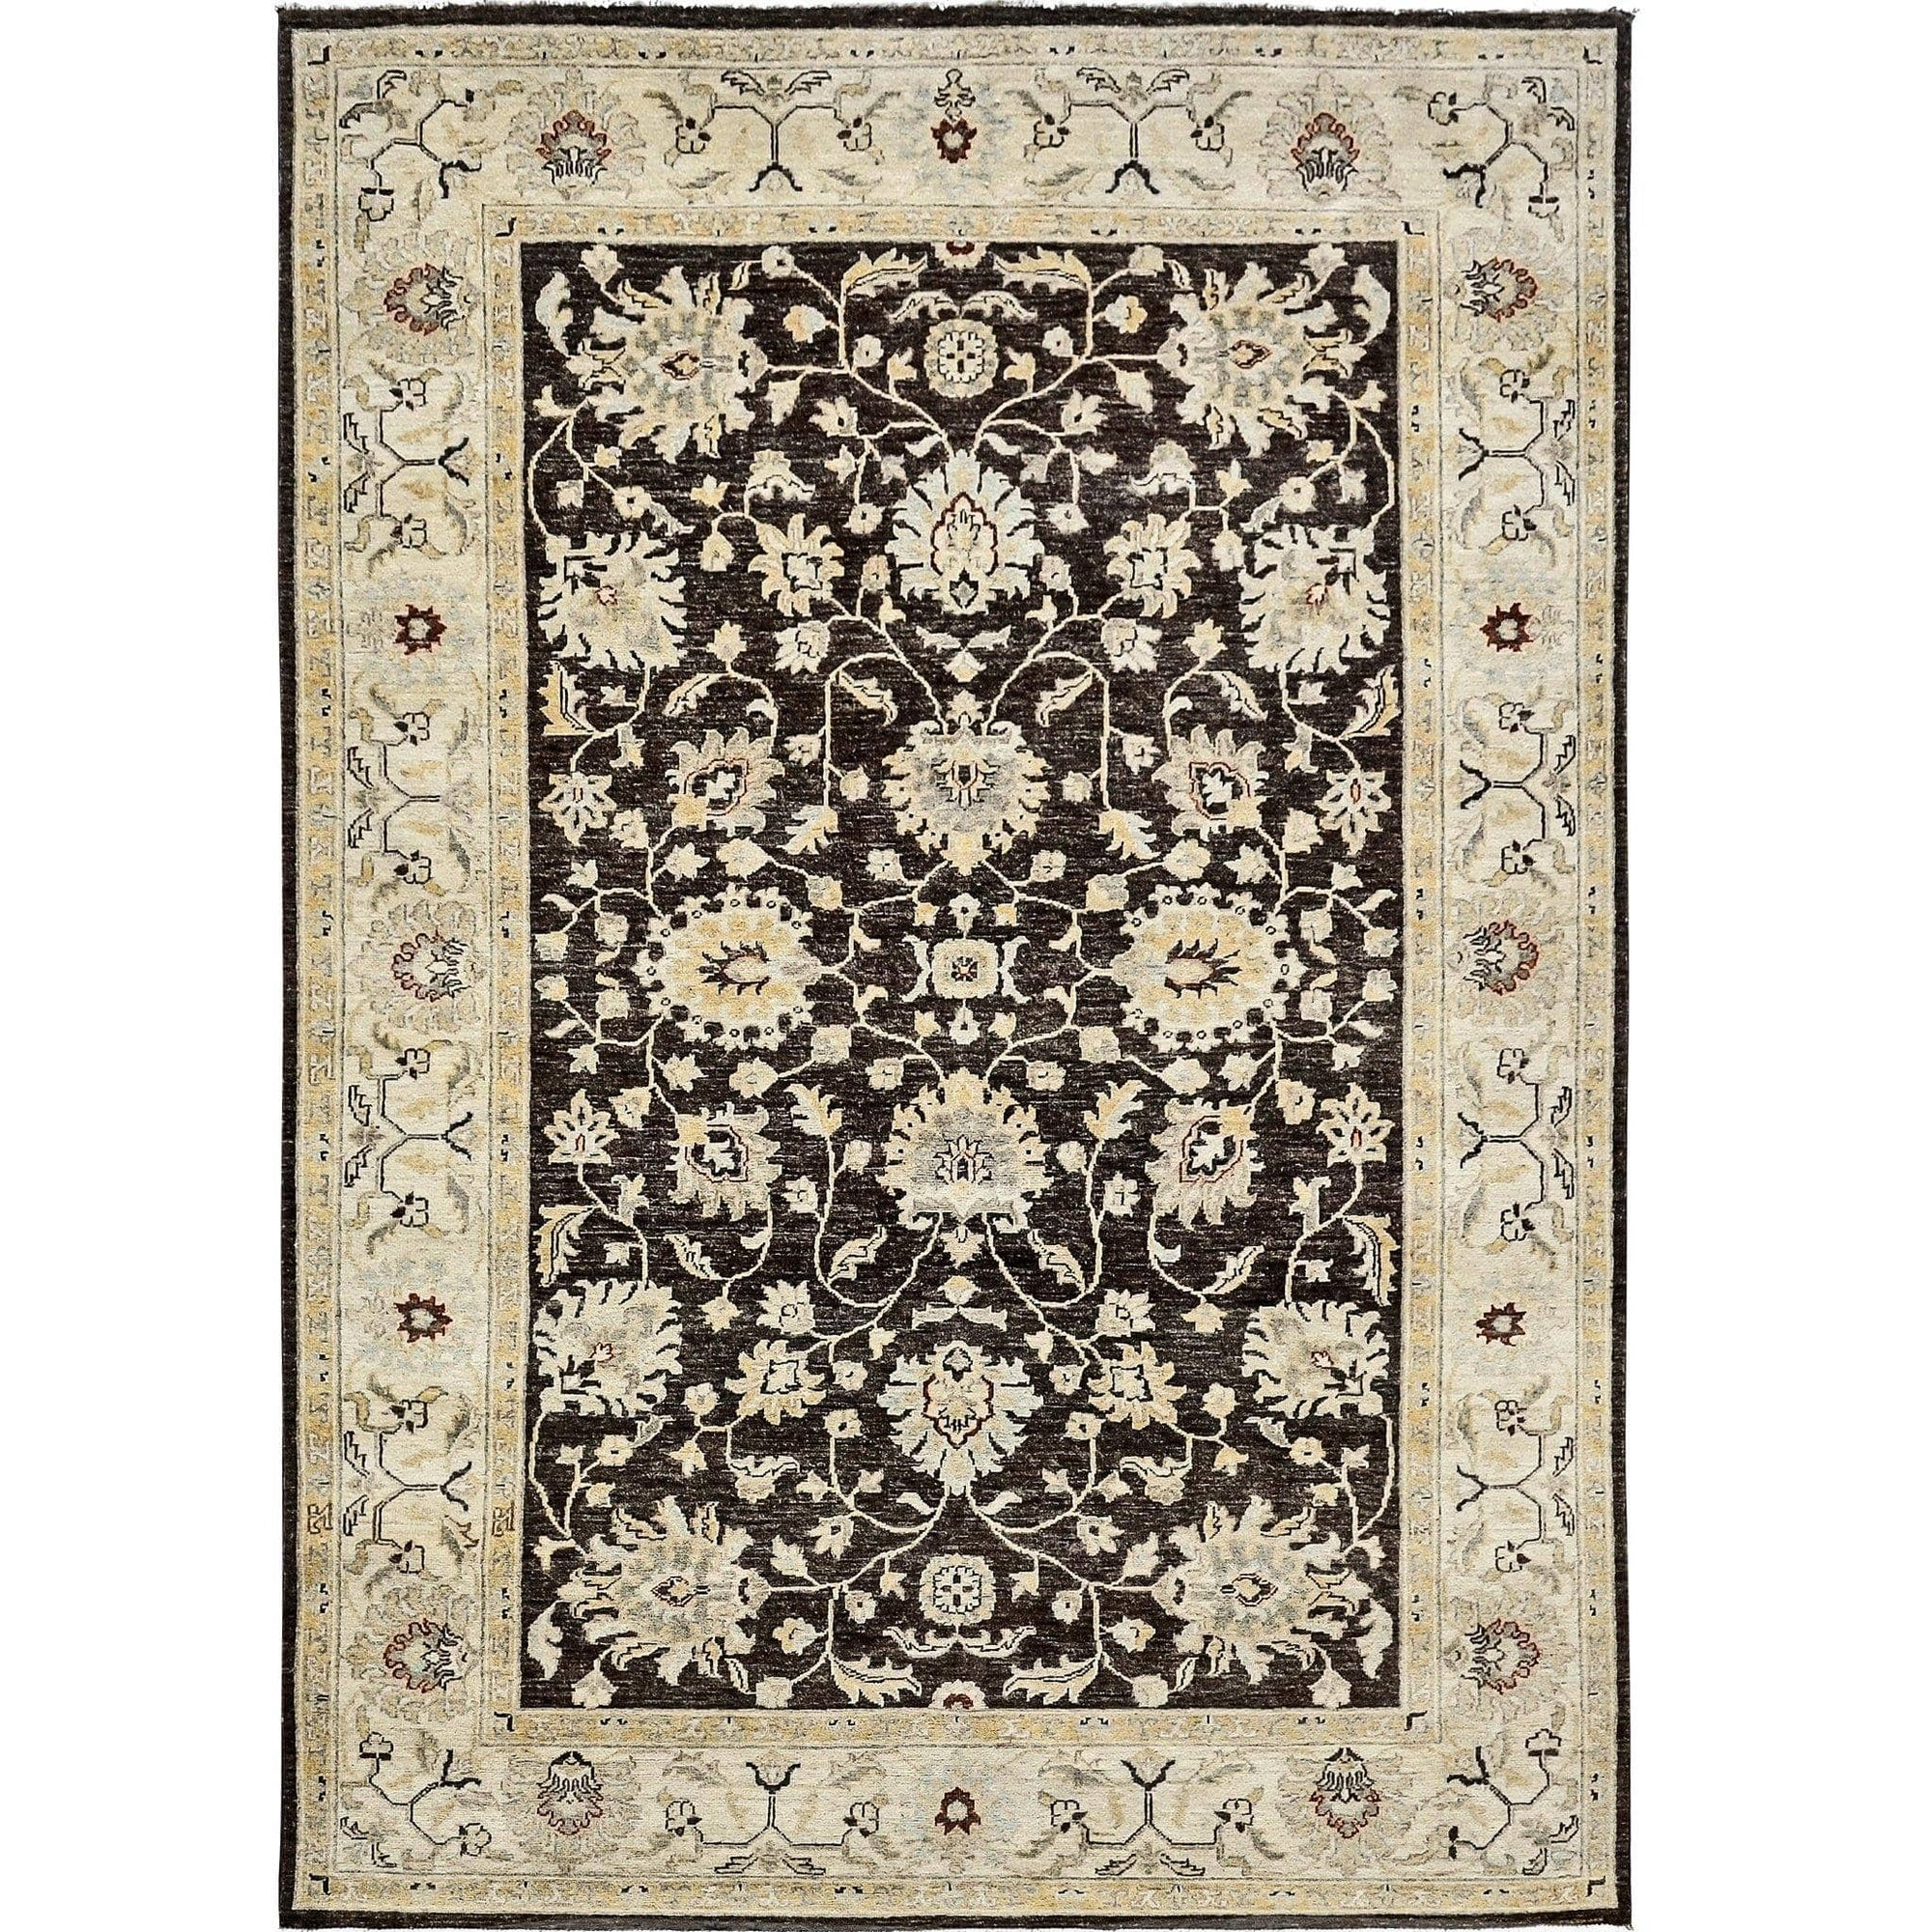 Fine Hand-knotted Vintage Design Chobi Rug 177cm x 267cm Persian-Rug | House-of-Haghi | NewMarket | Auckland | NZ | Handmade Persian Rugs | Hand Knotted Persian Rugs